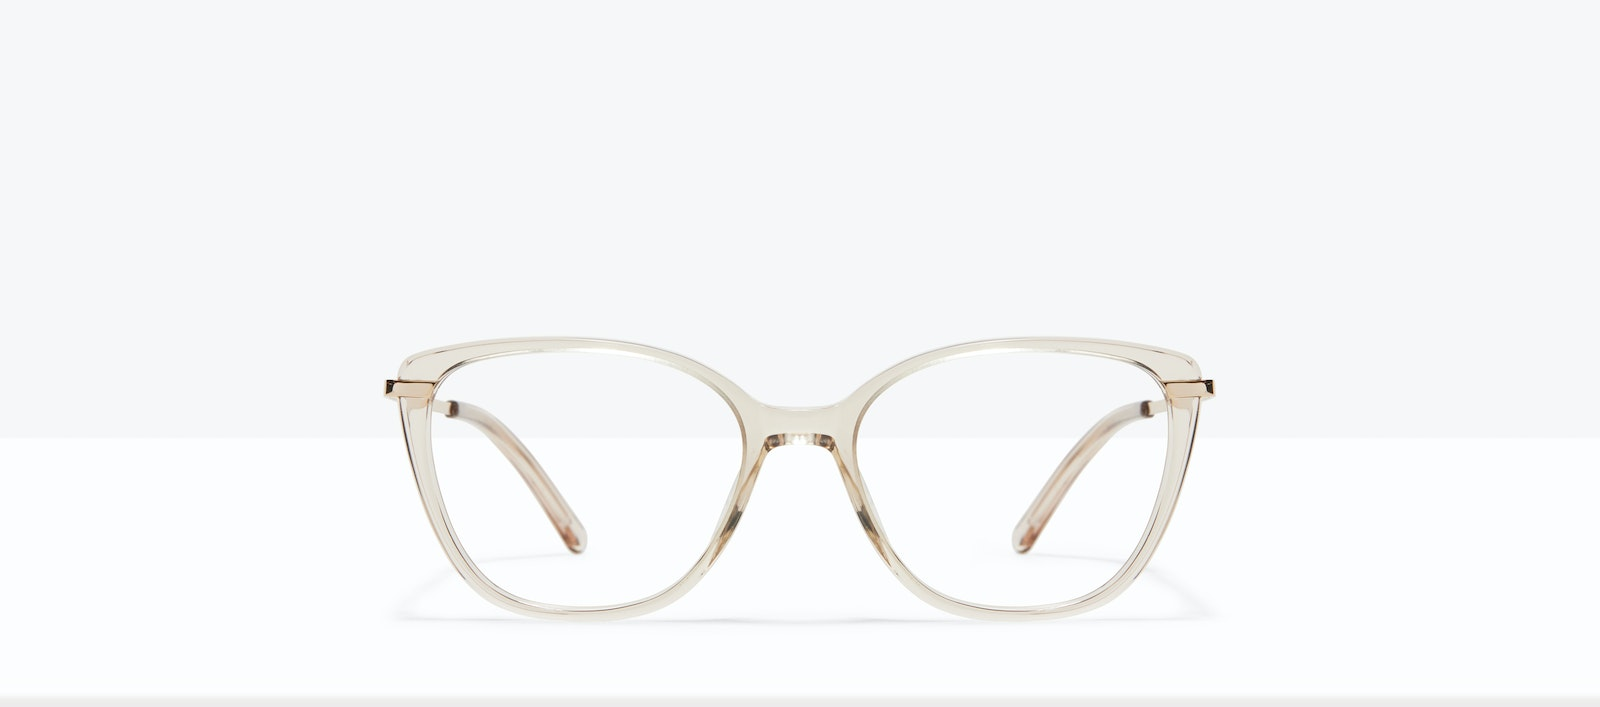 Affordable Fashion Glasses Rectangle Square Eyeglasses Women Illusion XS Blond Front